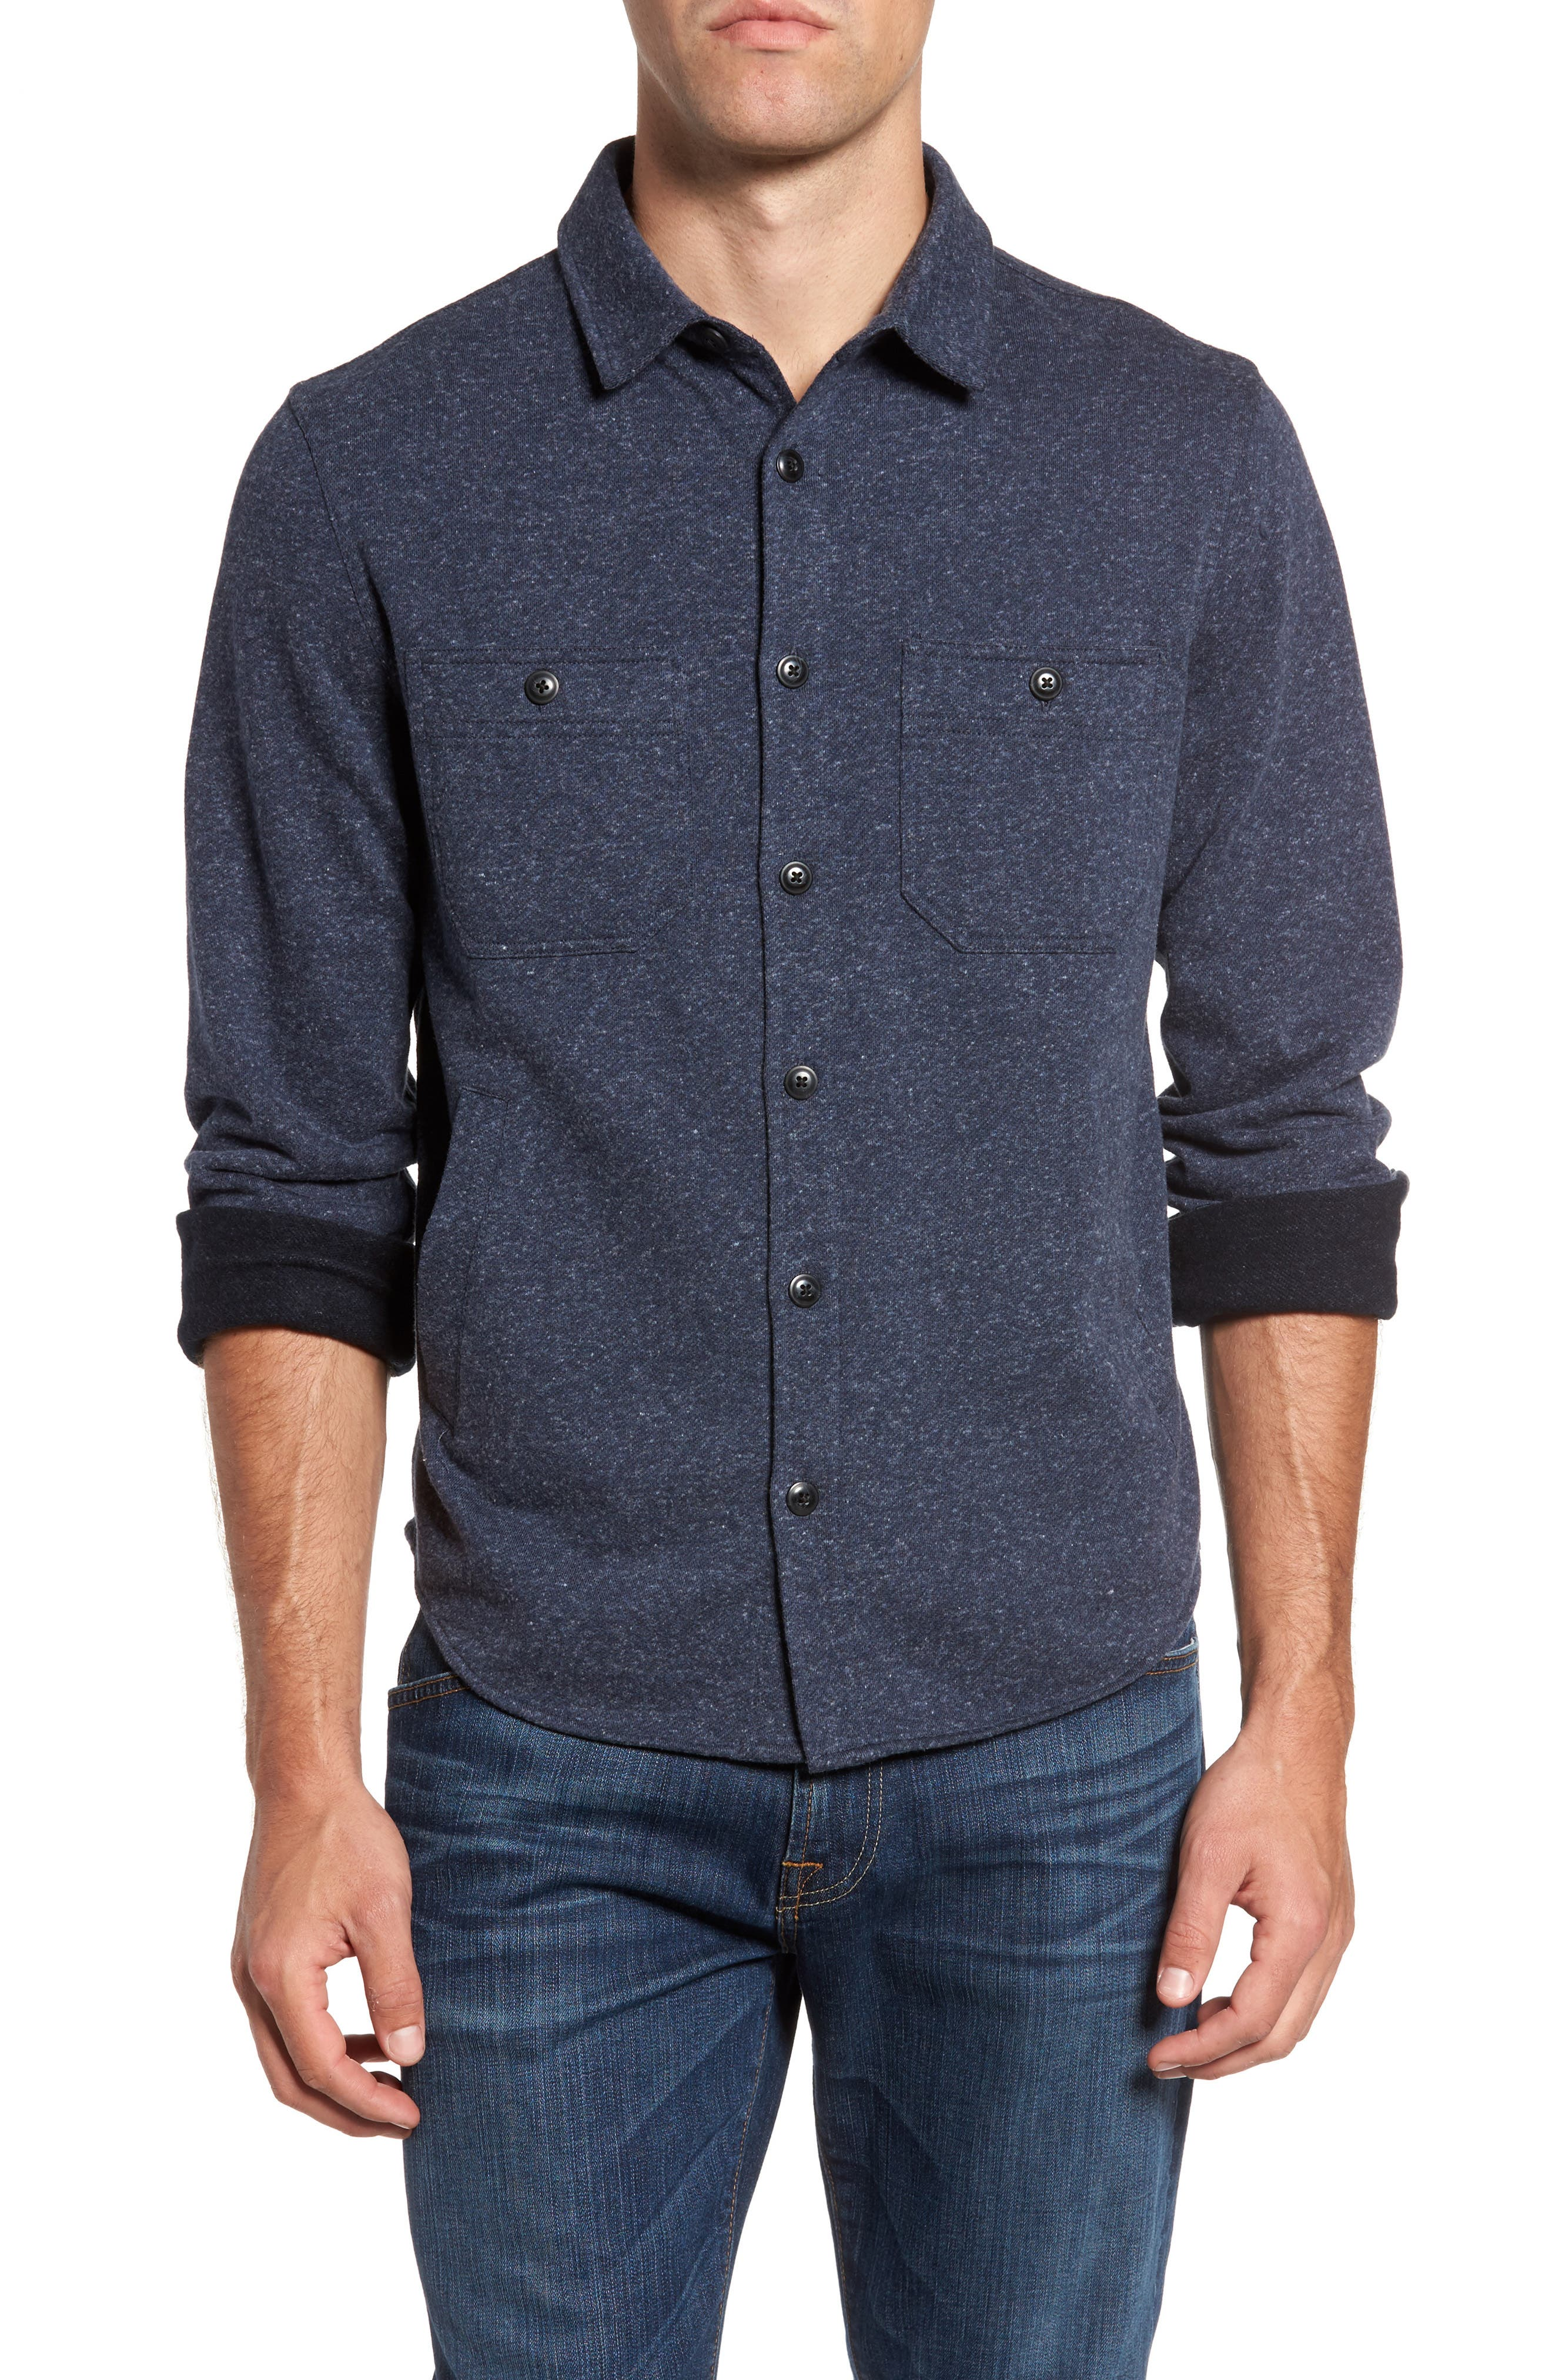 Alternate Image 1 Selected - Grayers Bayswater Modern Fit Heathered Shirt Jacket